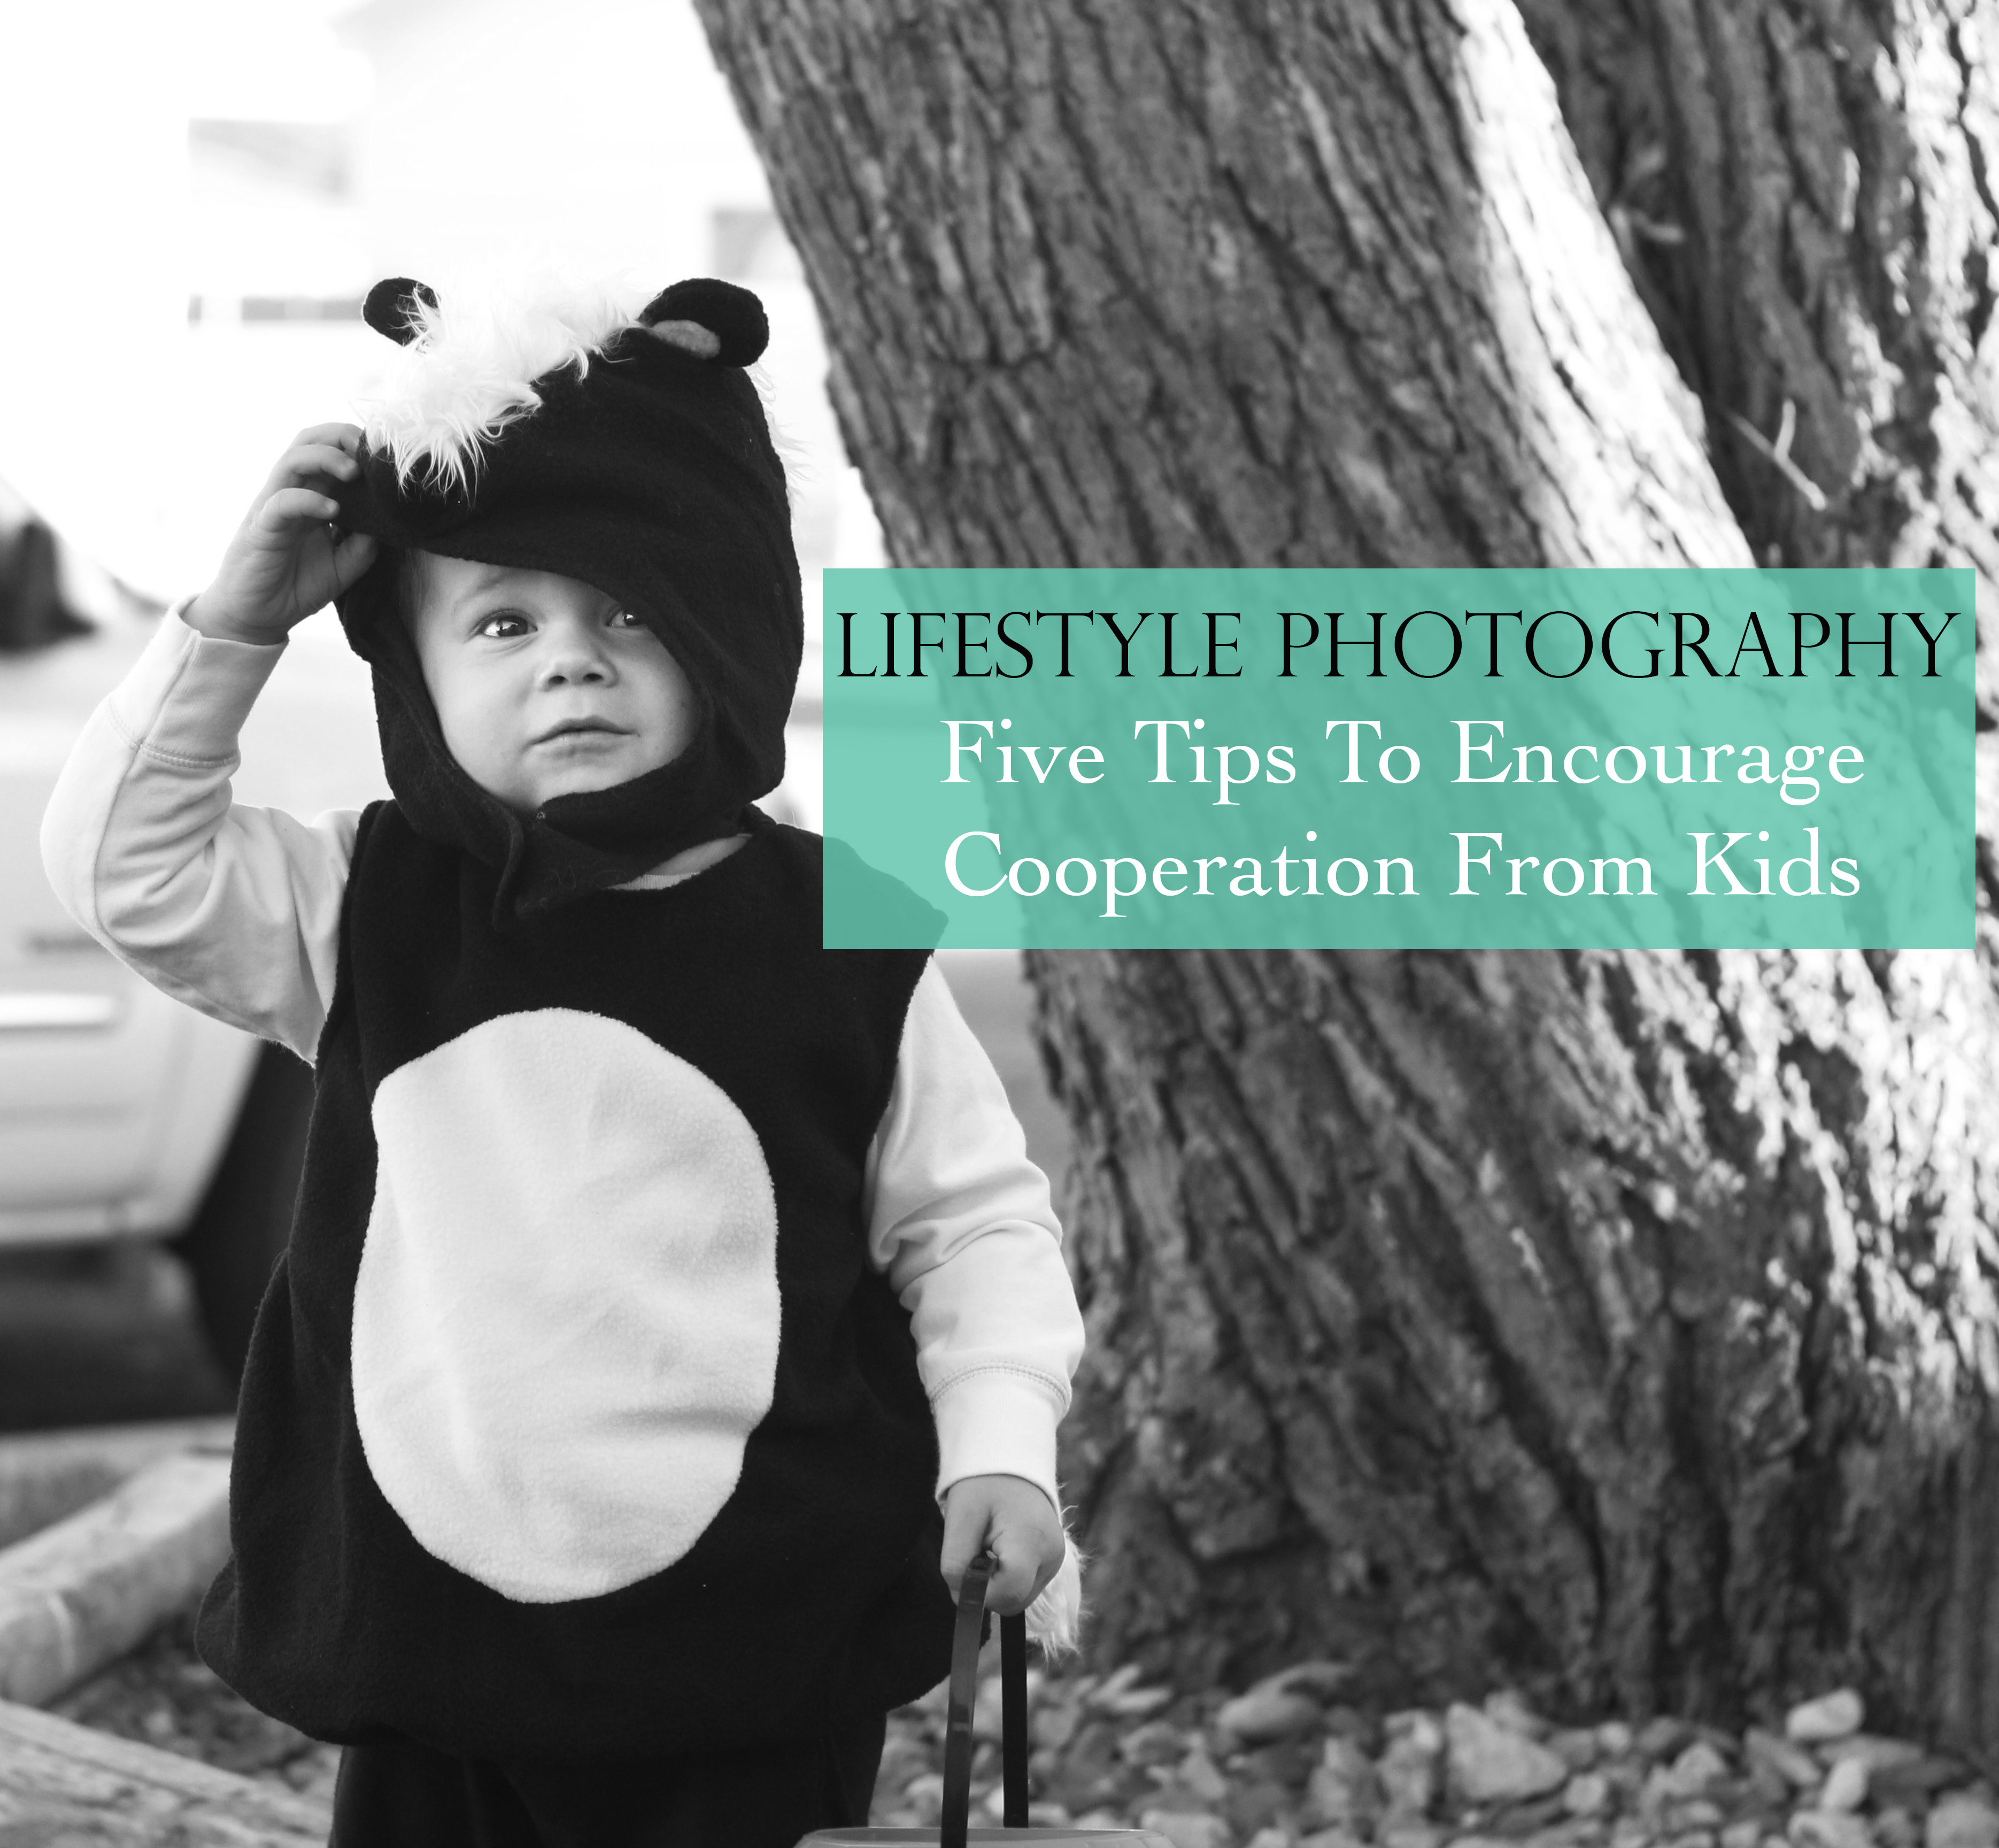 Lifestyle Photography: Five Tips To Encourage Cooperation From Kids